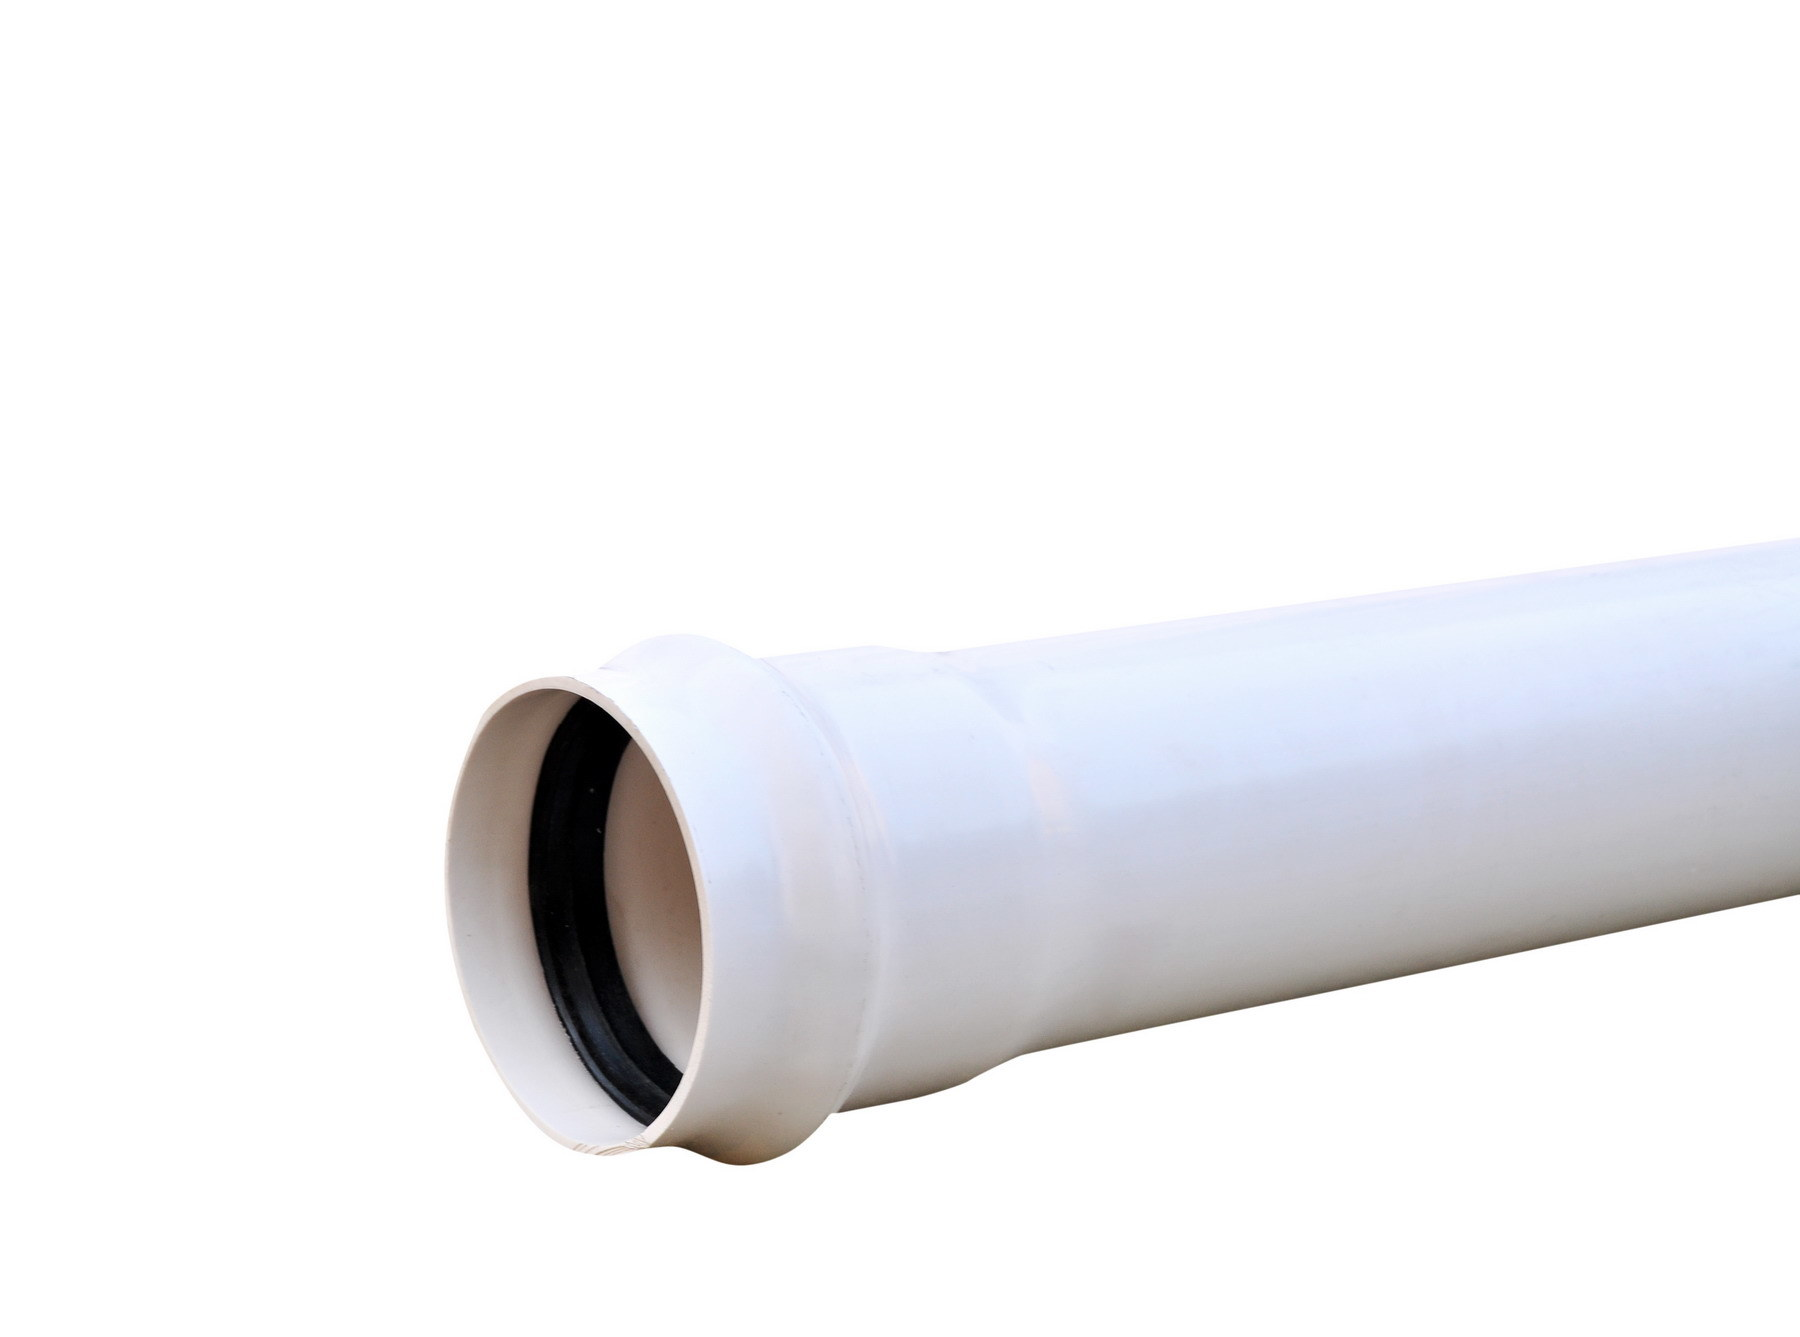 Pvc Joints Pvc Pipe Gaskets Bing Images